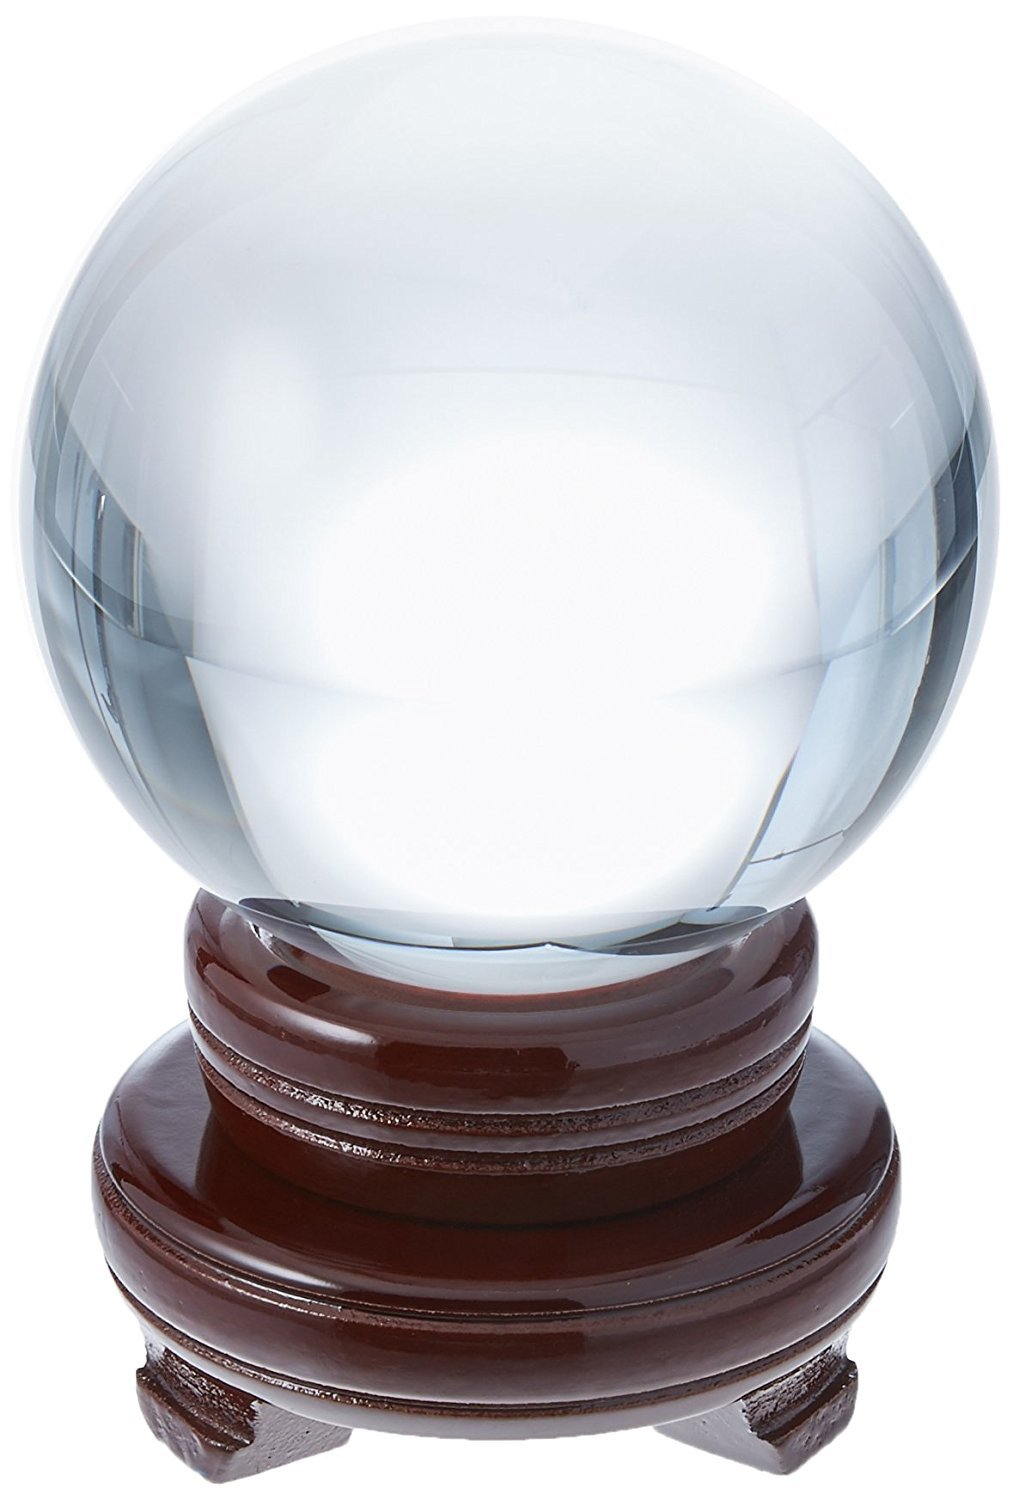 Amlong Crystal Clear Quartz Crystal Ball 150MM